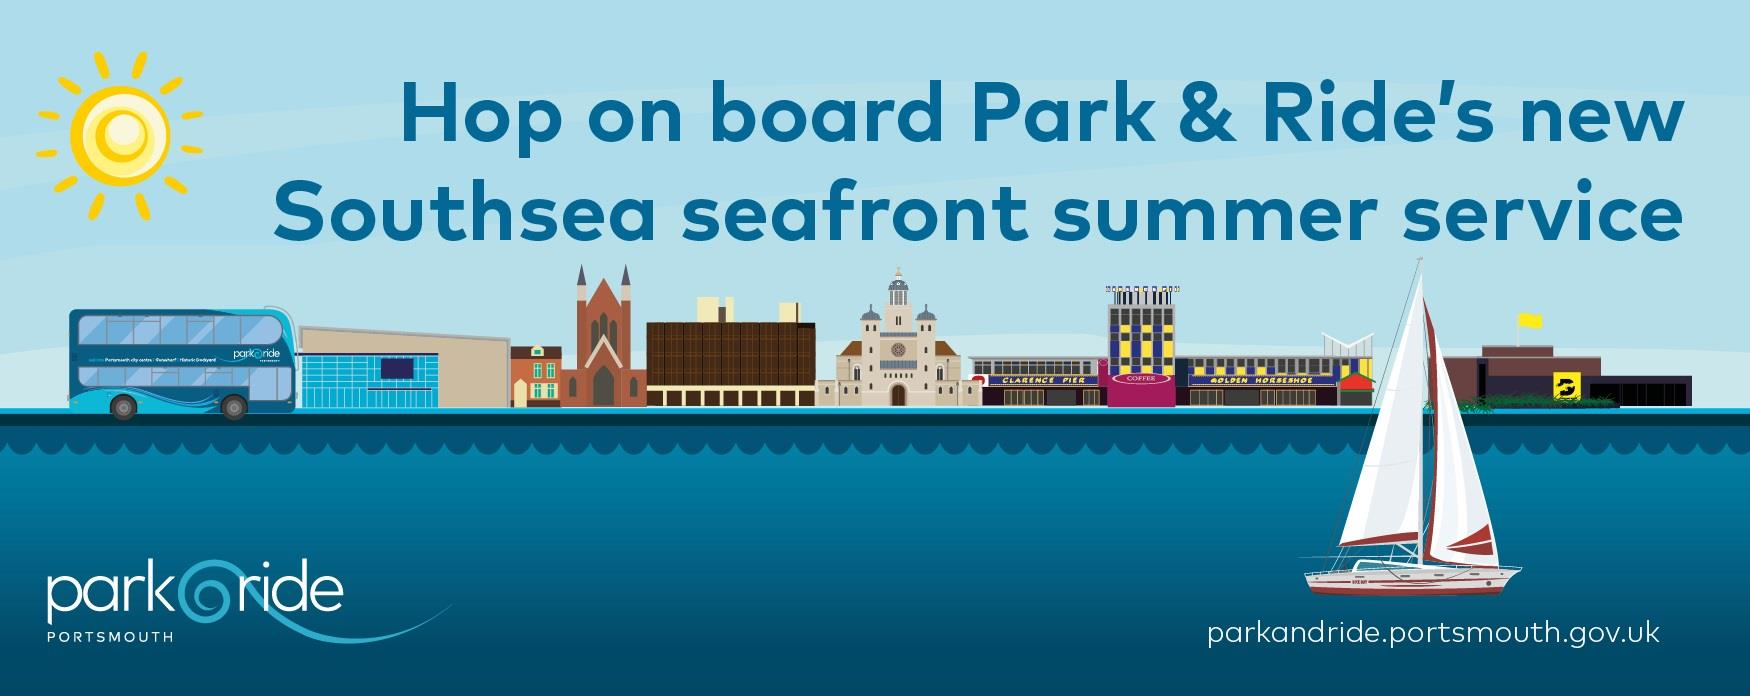 Illustration for Portsmouth Park and Ride featuring Southsea attractions